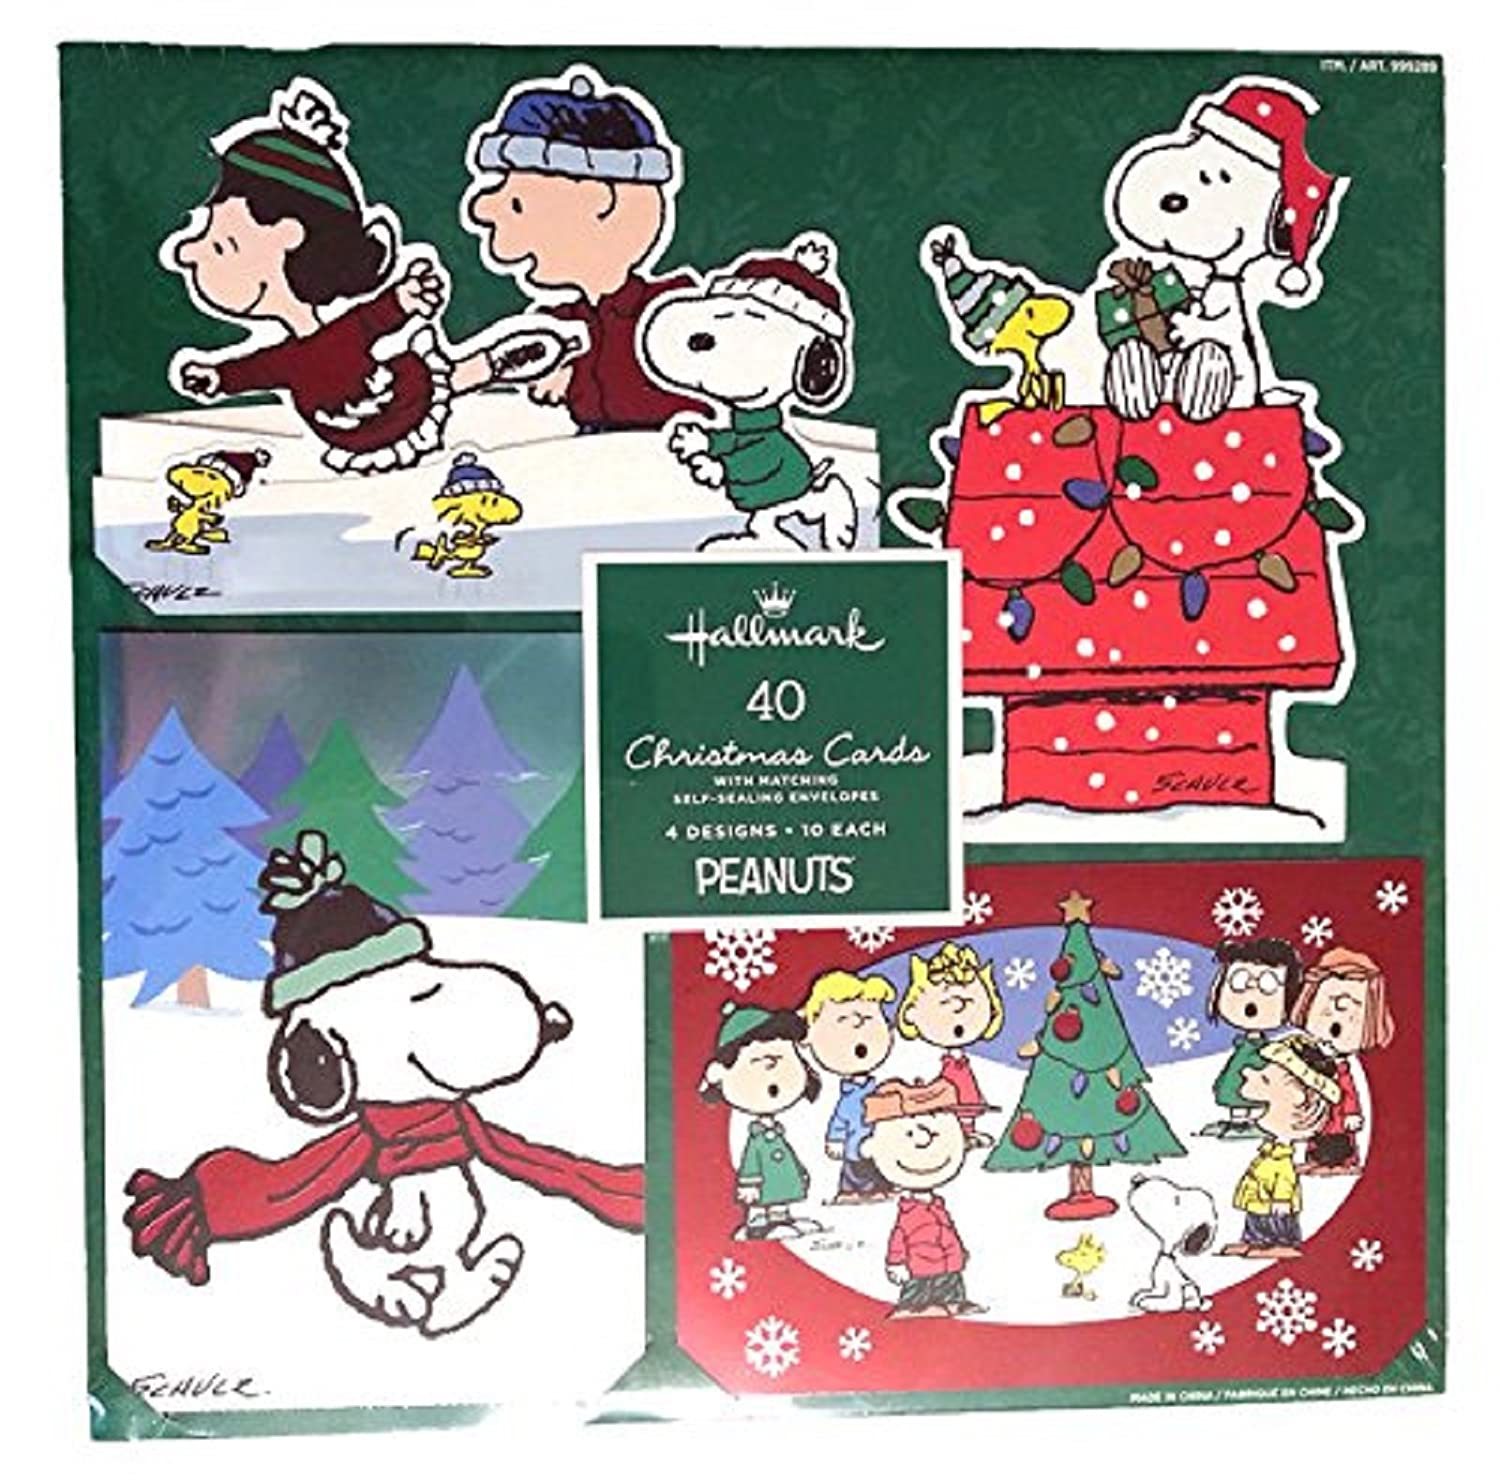 Amazon.com: Hallmark Peanuts Traditional Christmas Cards with Foil ...